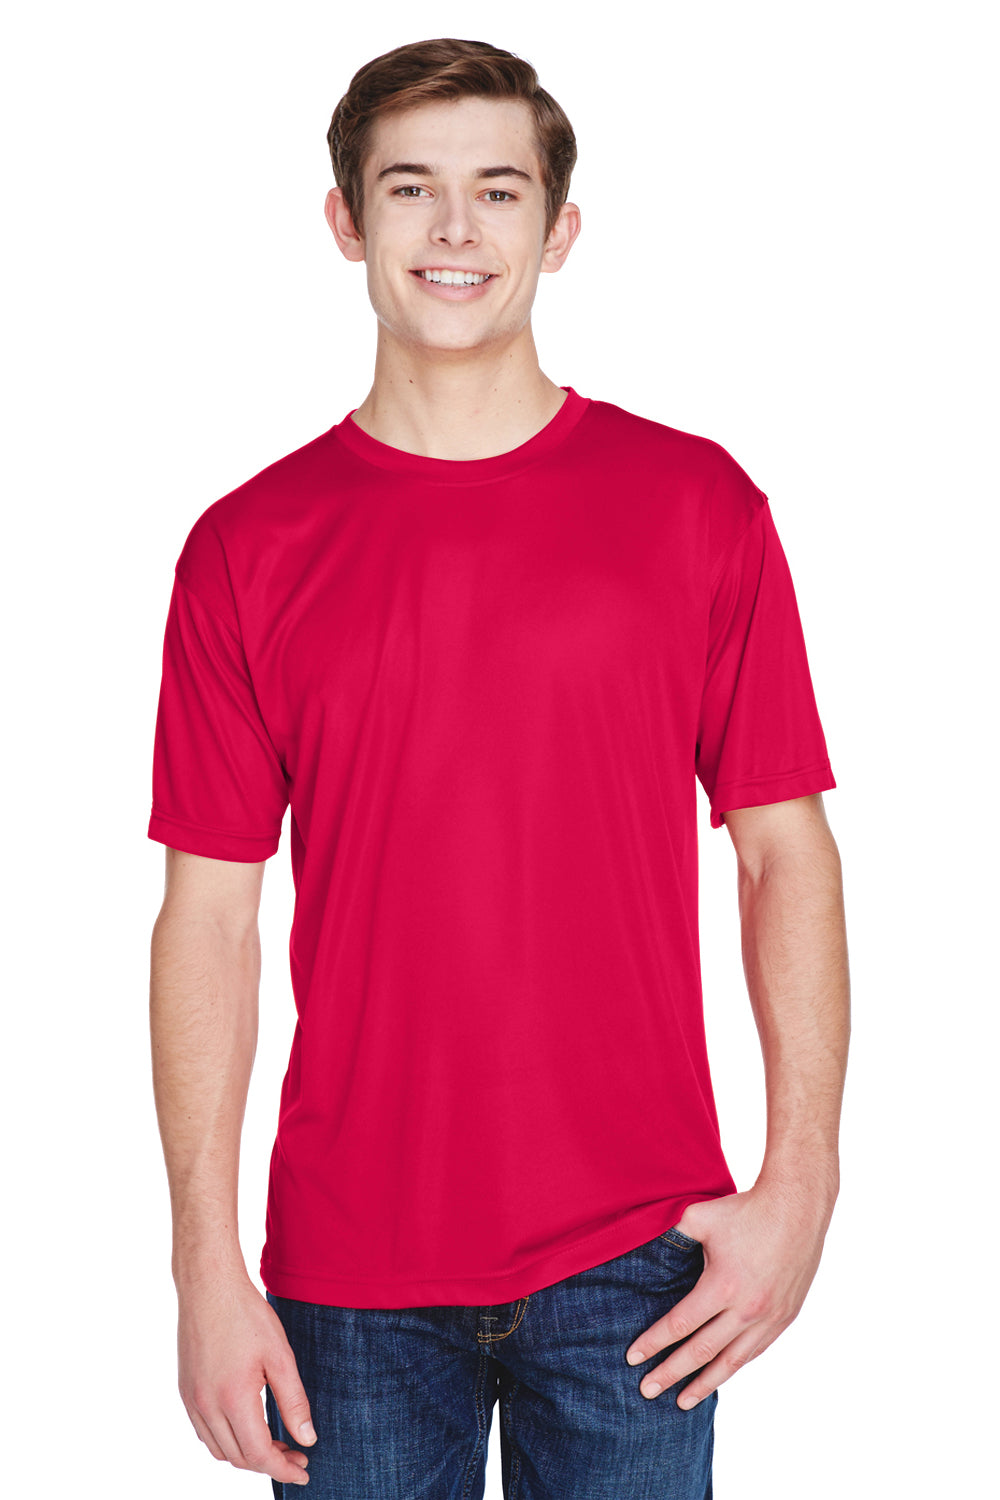 UltraClub 8620 Mens Cool & Dry Performance Moisture Wicking Short Sleeve Crewneck T-Shirt Red Front